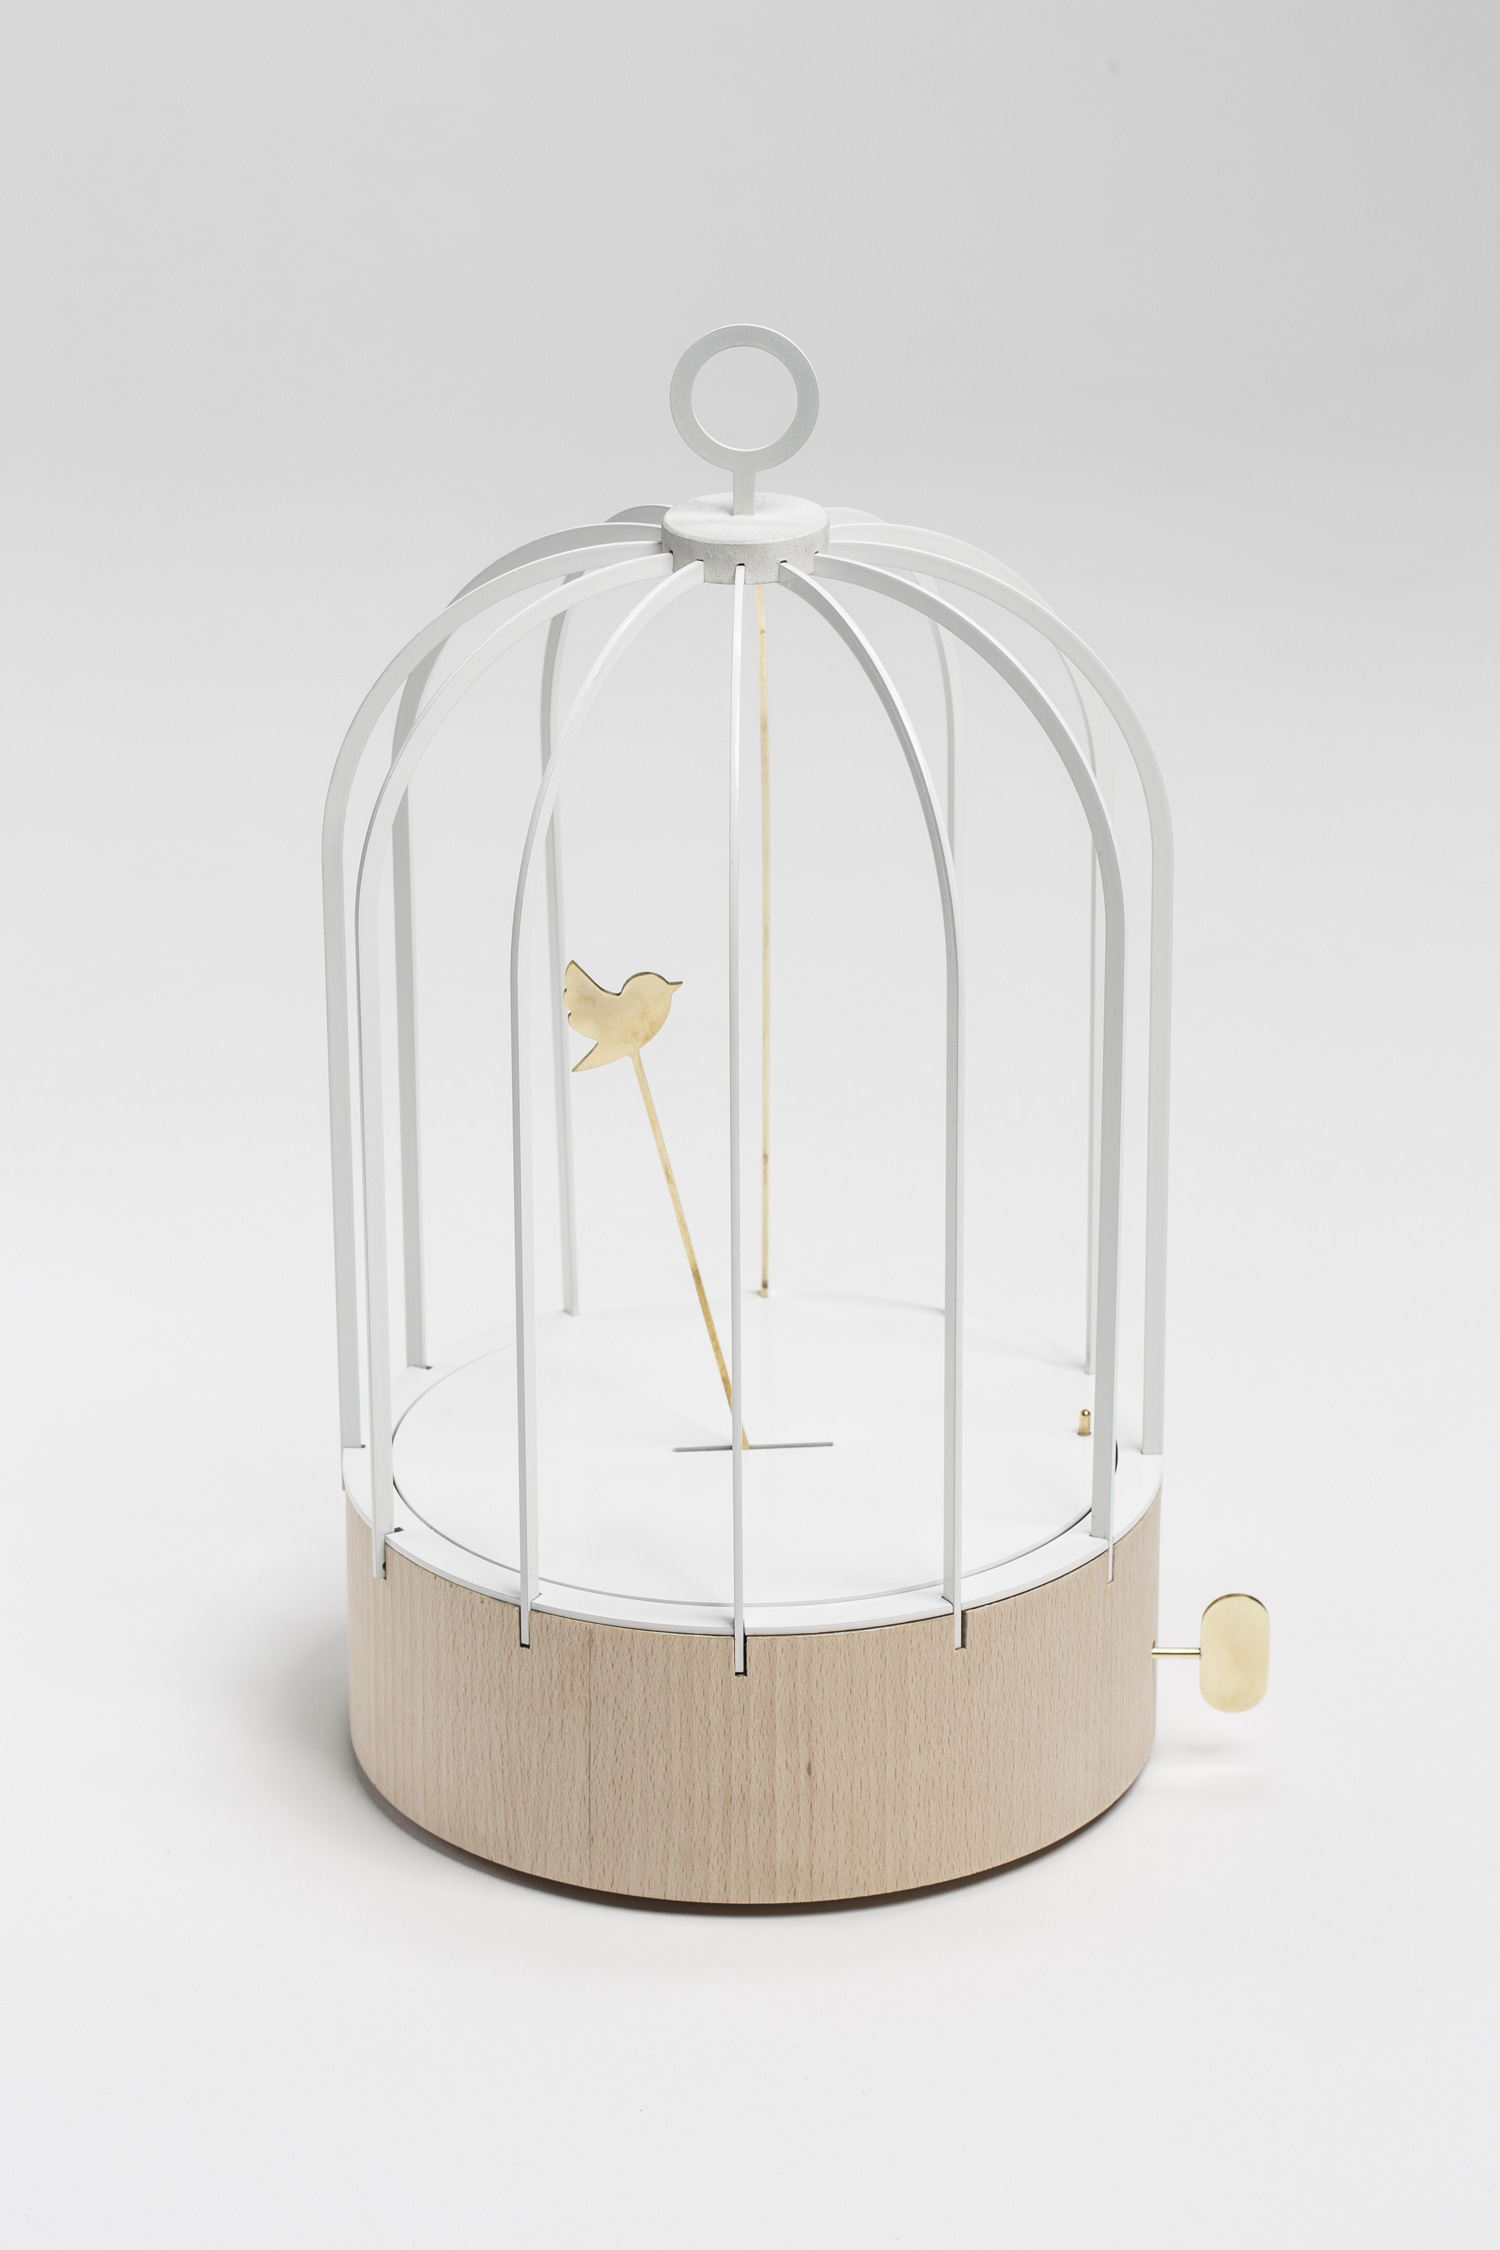 #Milantrace2016 - Ventura Lambrate 24 Hours in the Life of a Swiss Cuckoo Clock by HEAD–Genève Students | Yellowtrace